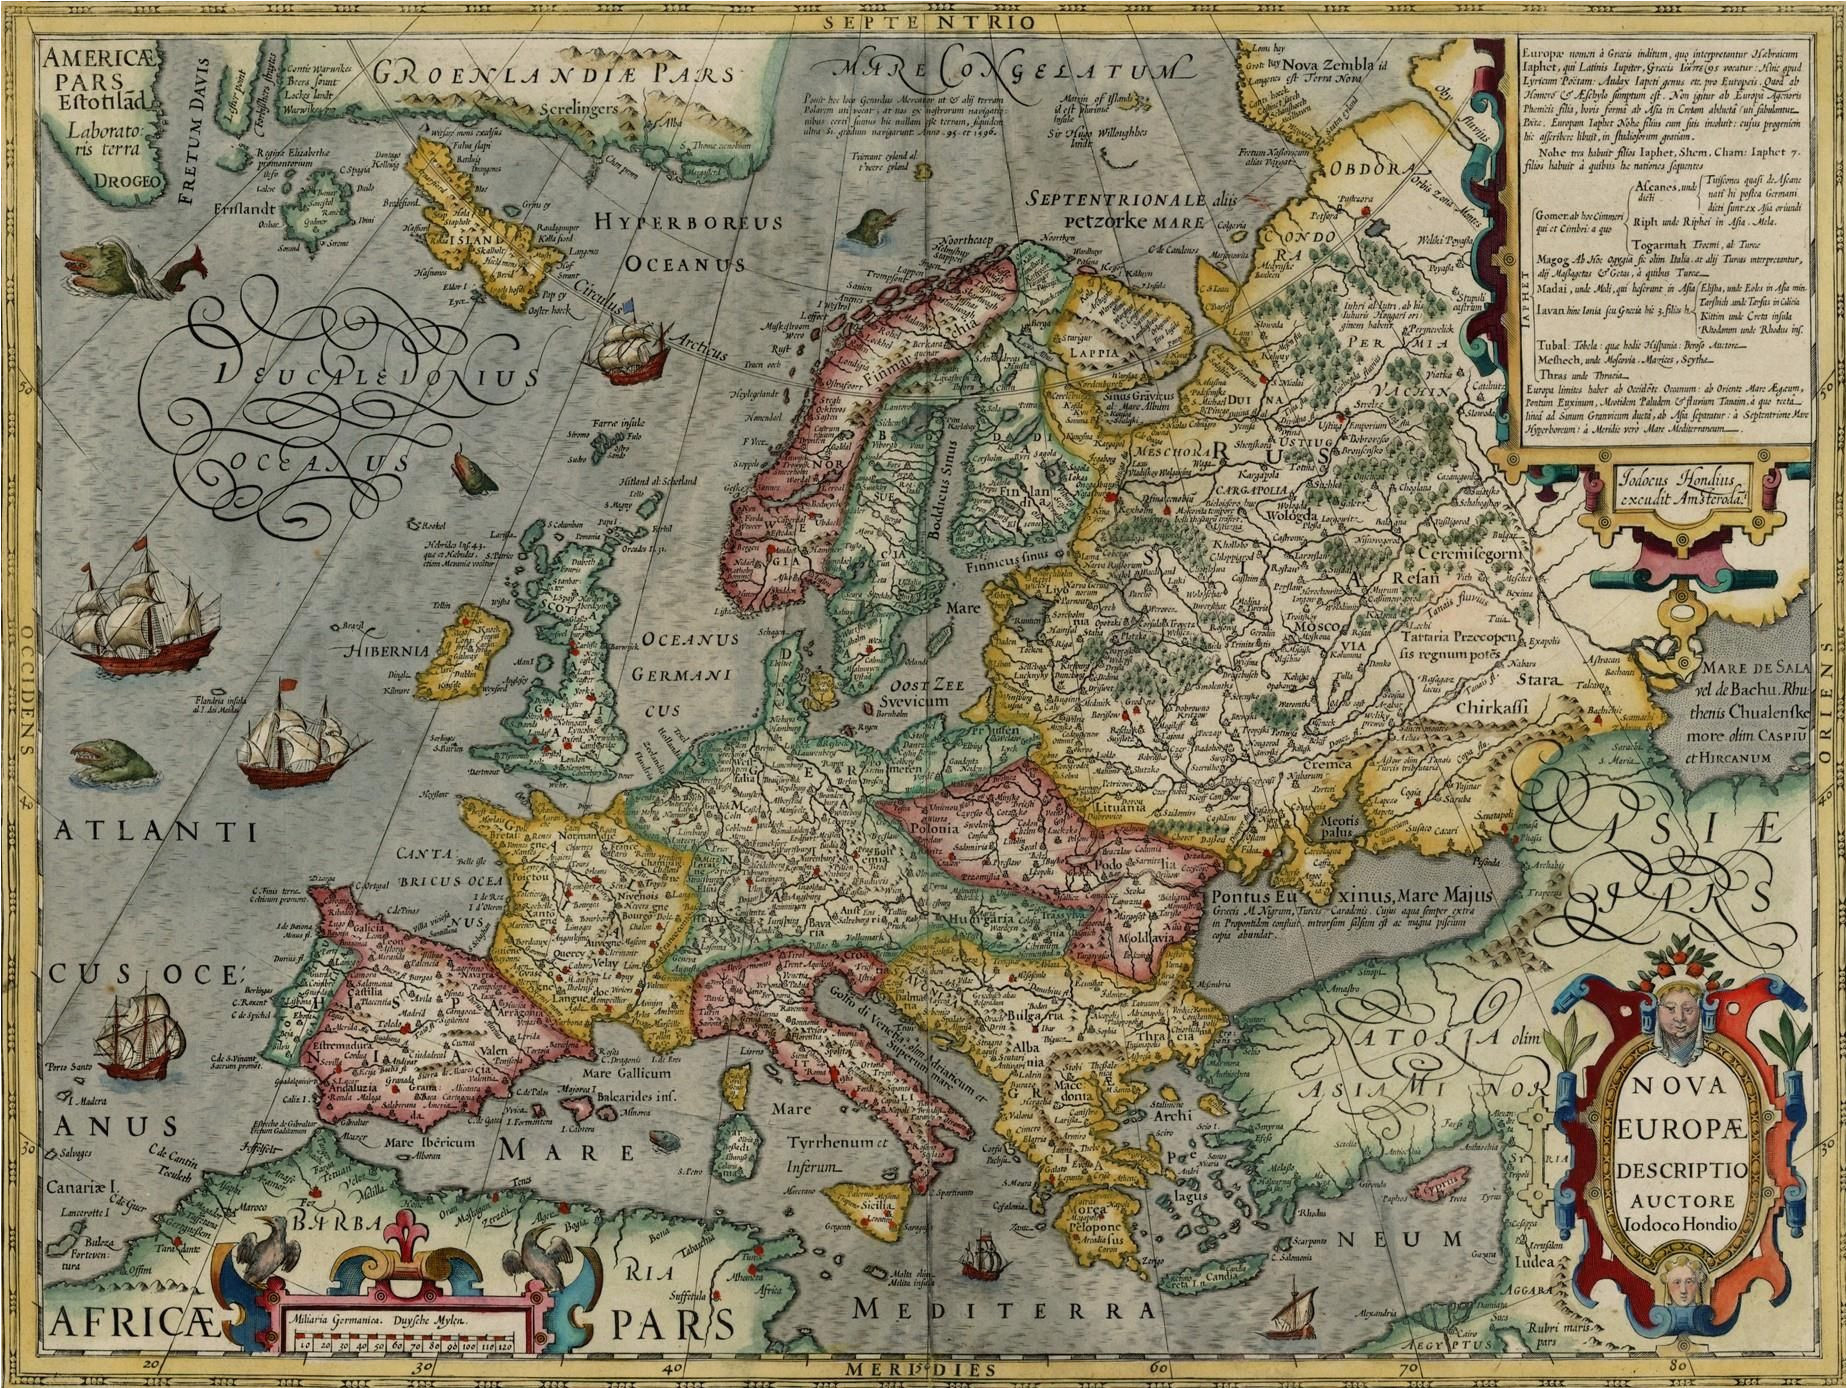 Jersey Europe Map Map Of Europe by Jodocus Hondius 1630 the Map Shows A